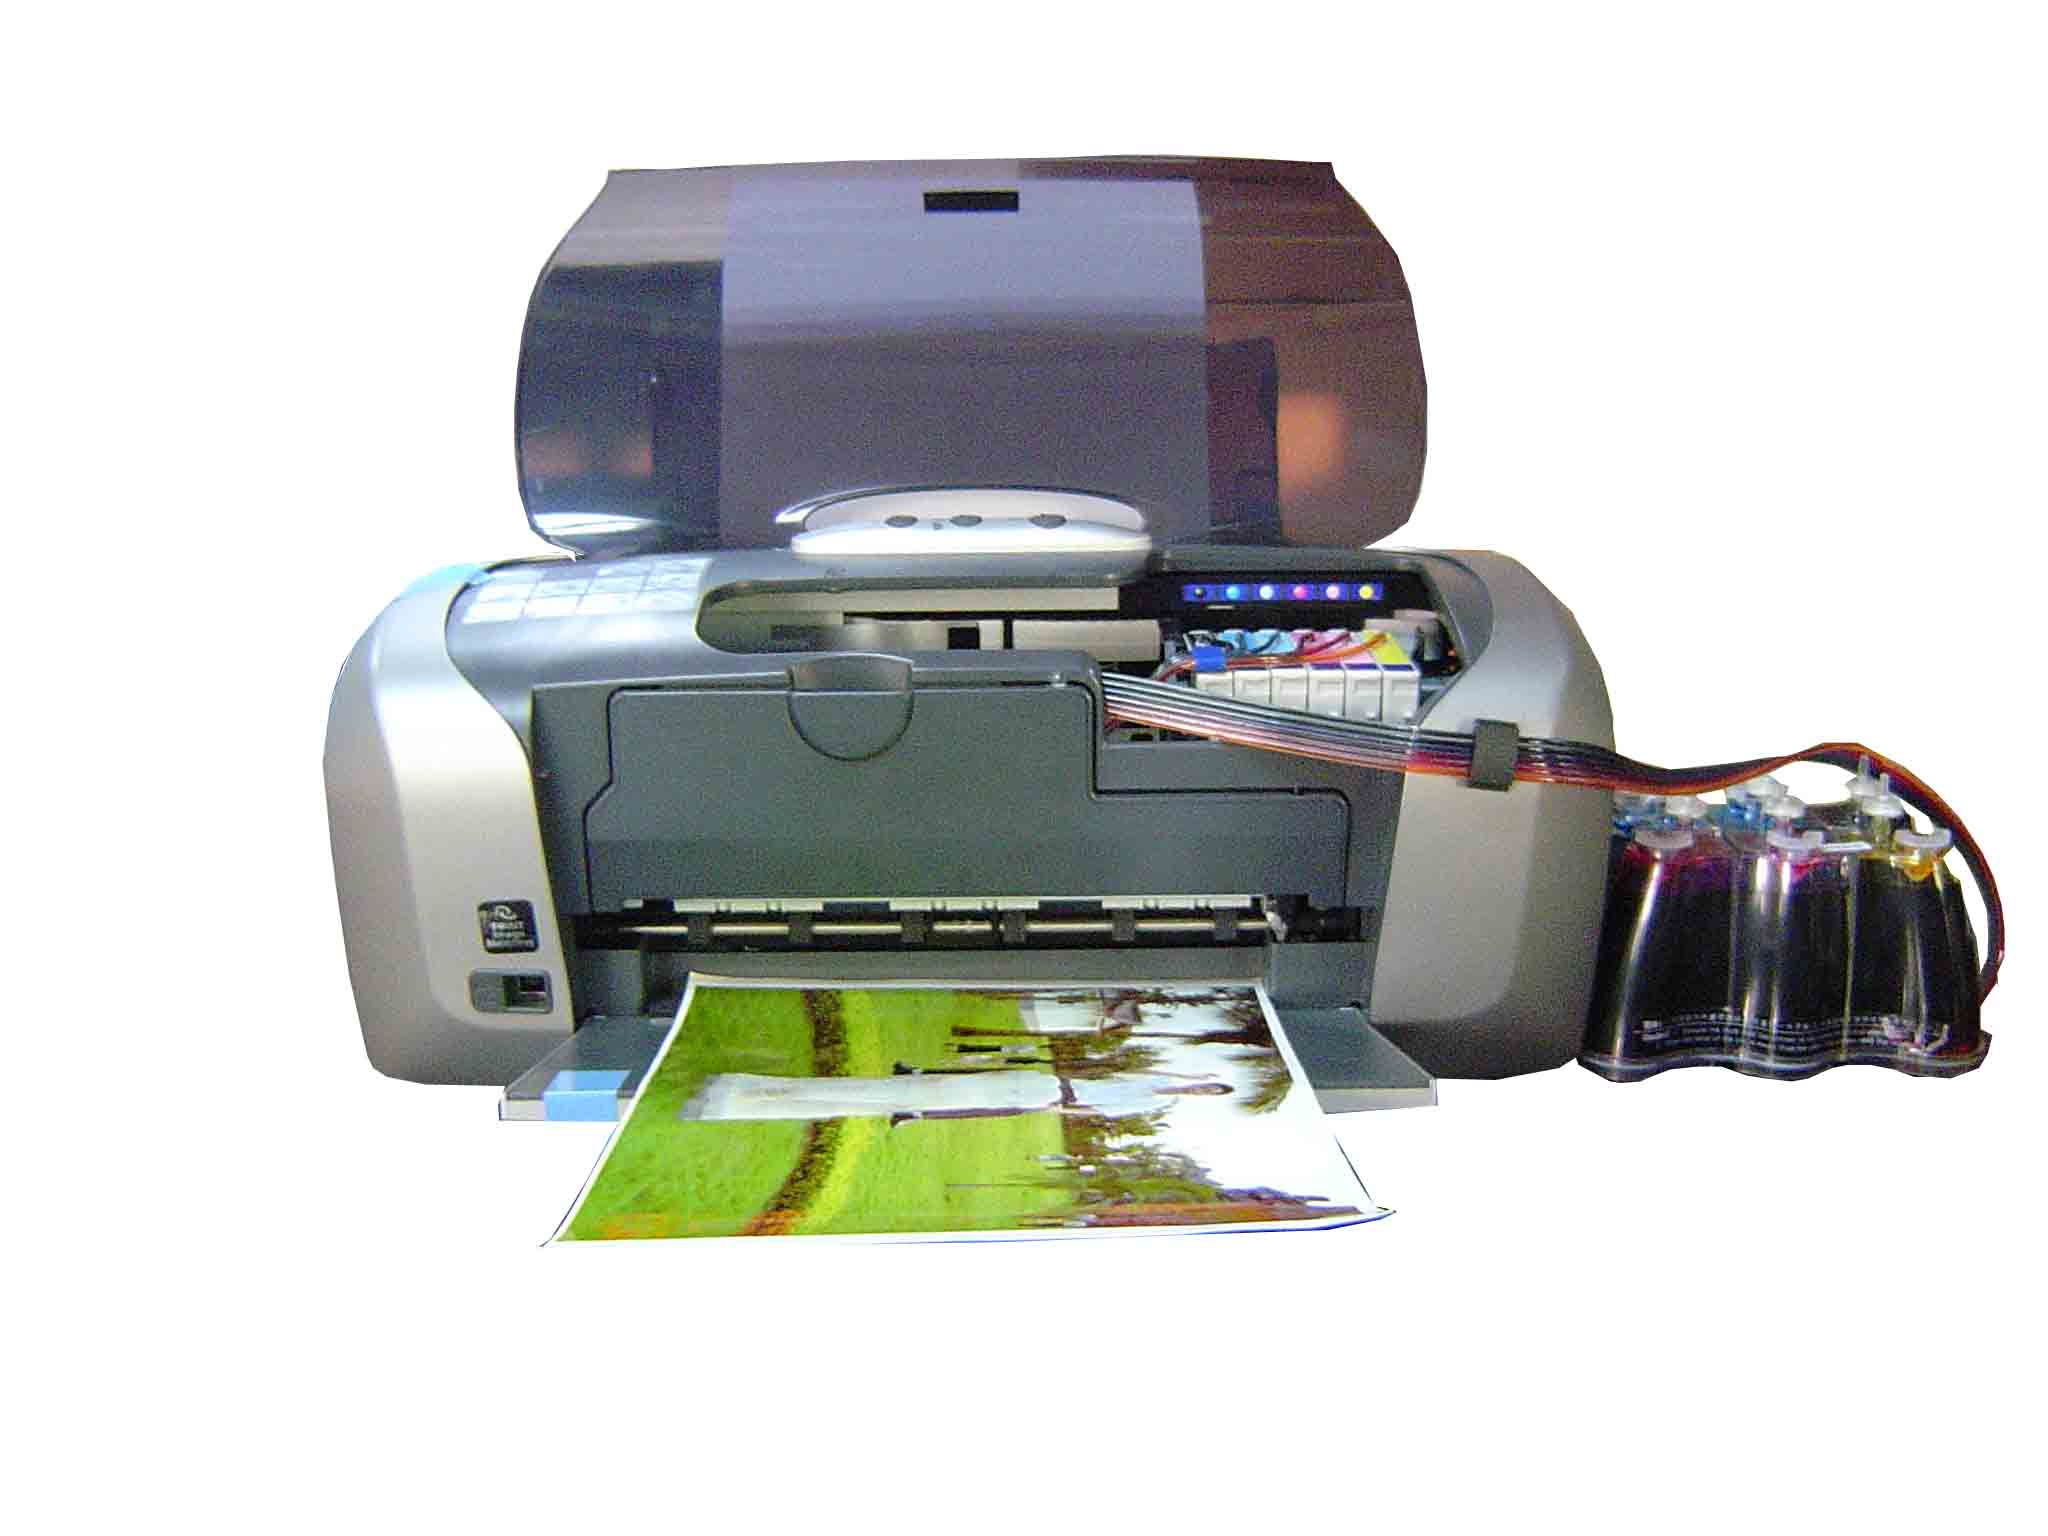 Fully set-up ready to go CIS system installed in printer